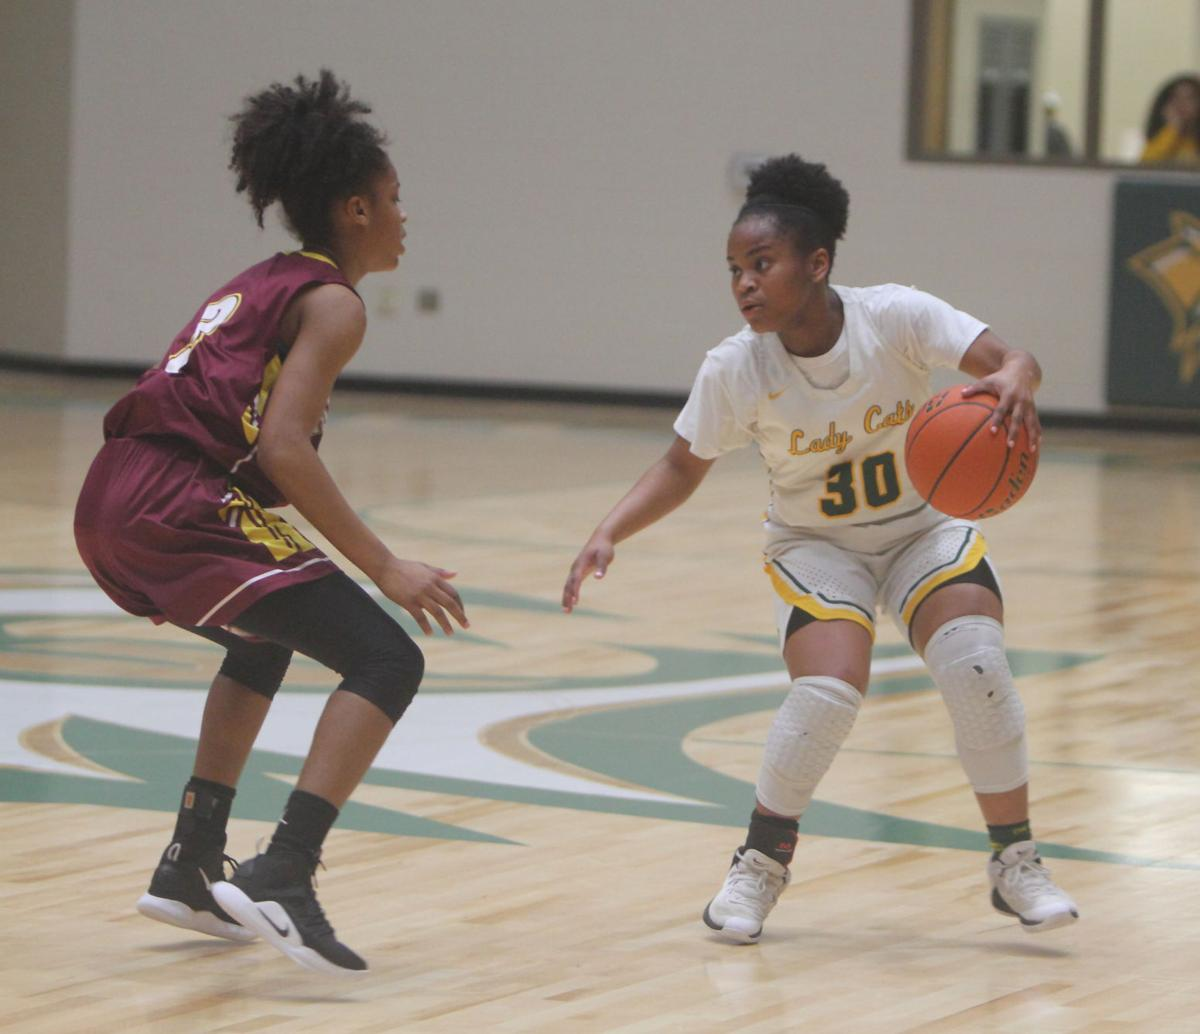 Walker girls basketball vs. Natchitoches Central: Asia Garner